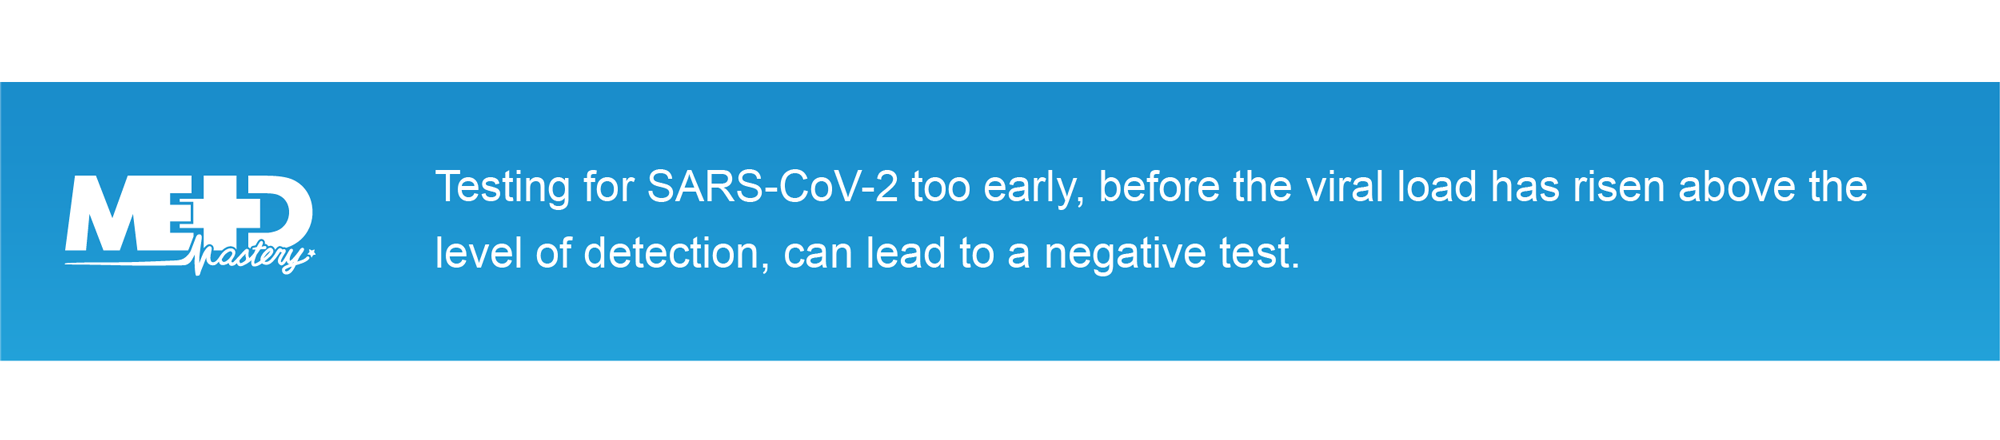 Testing for SARS-CoV-2 too early, before the viral load has risen above the level of detection, can lead to a negative test.